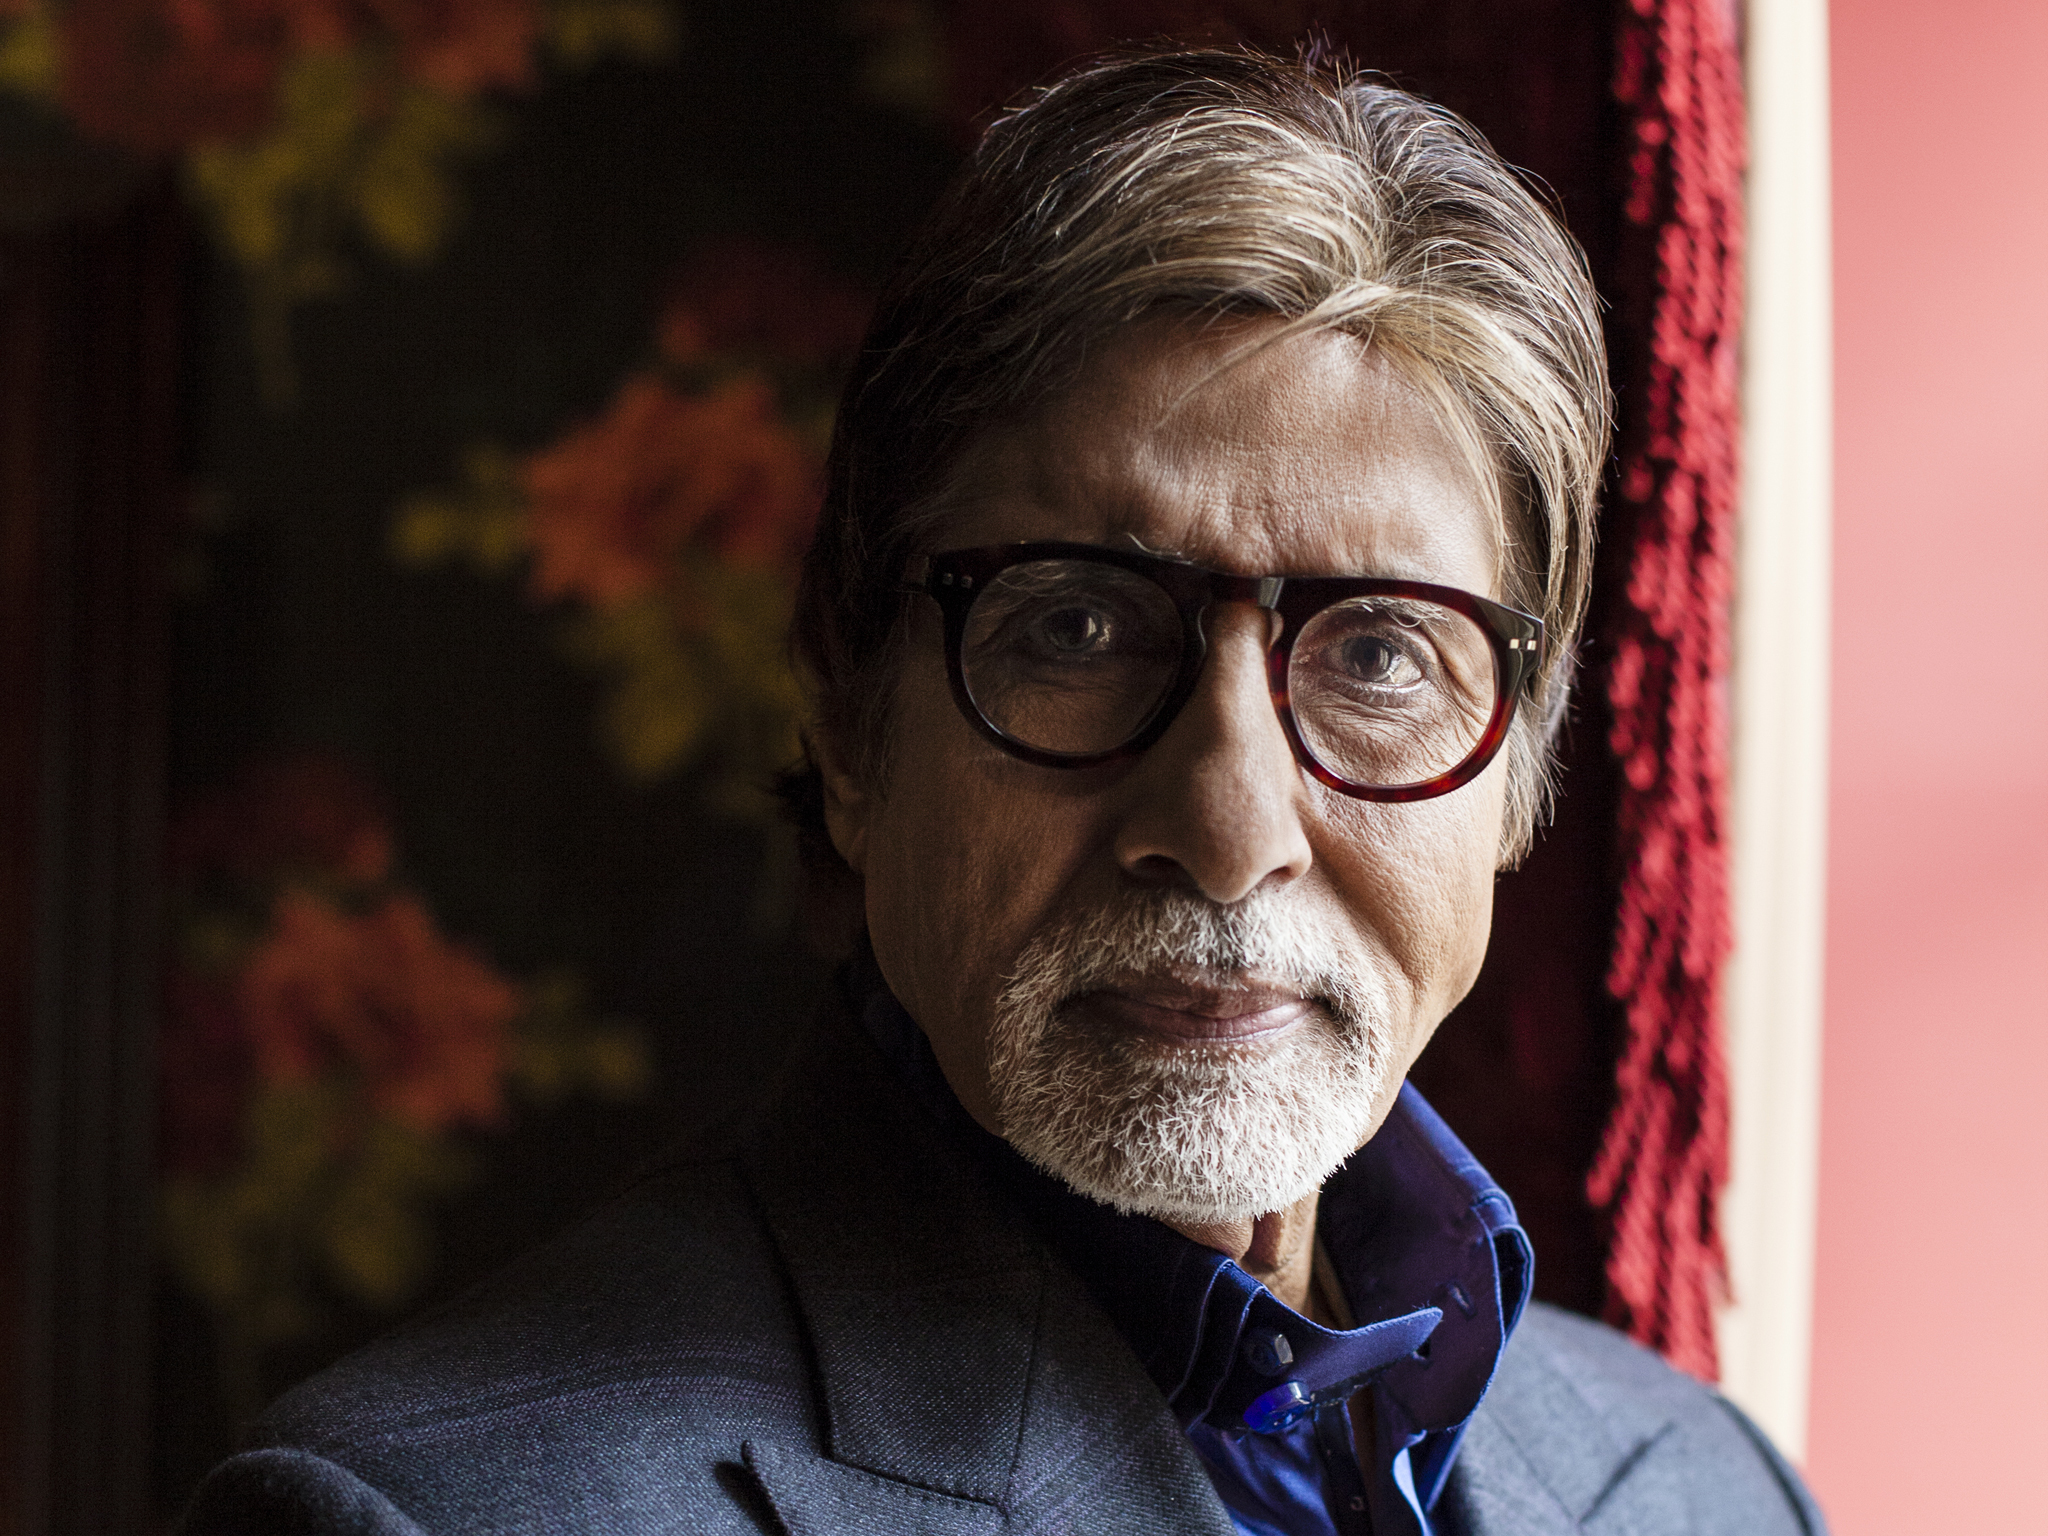 Amitabh Bachchan on 'Shamitabh', blogging and his favourite films